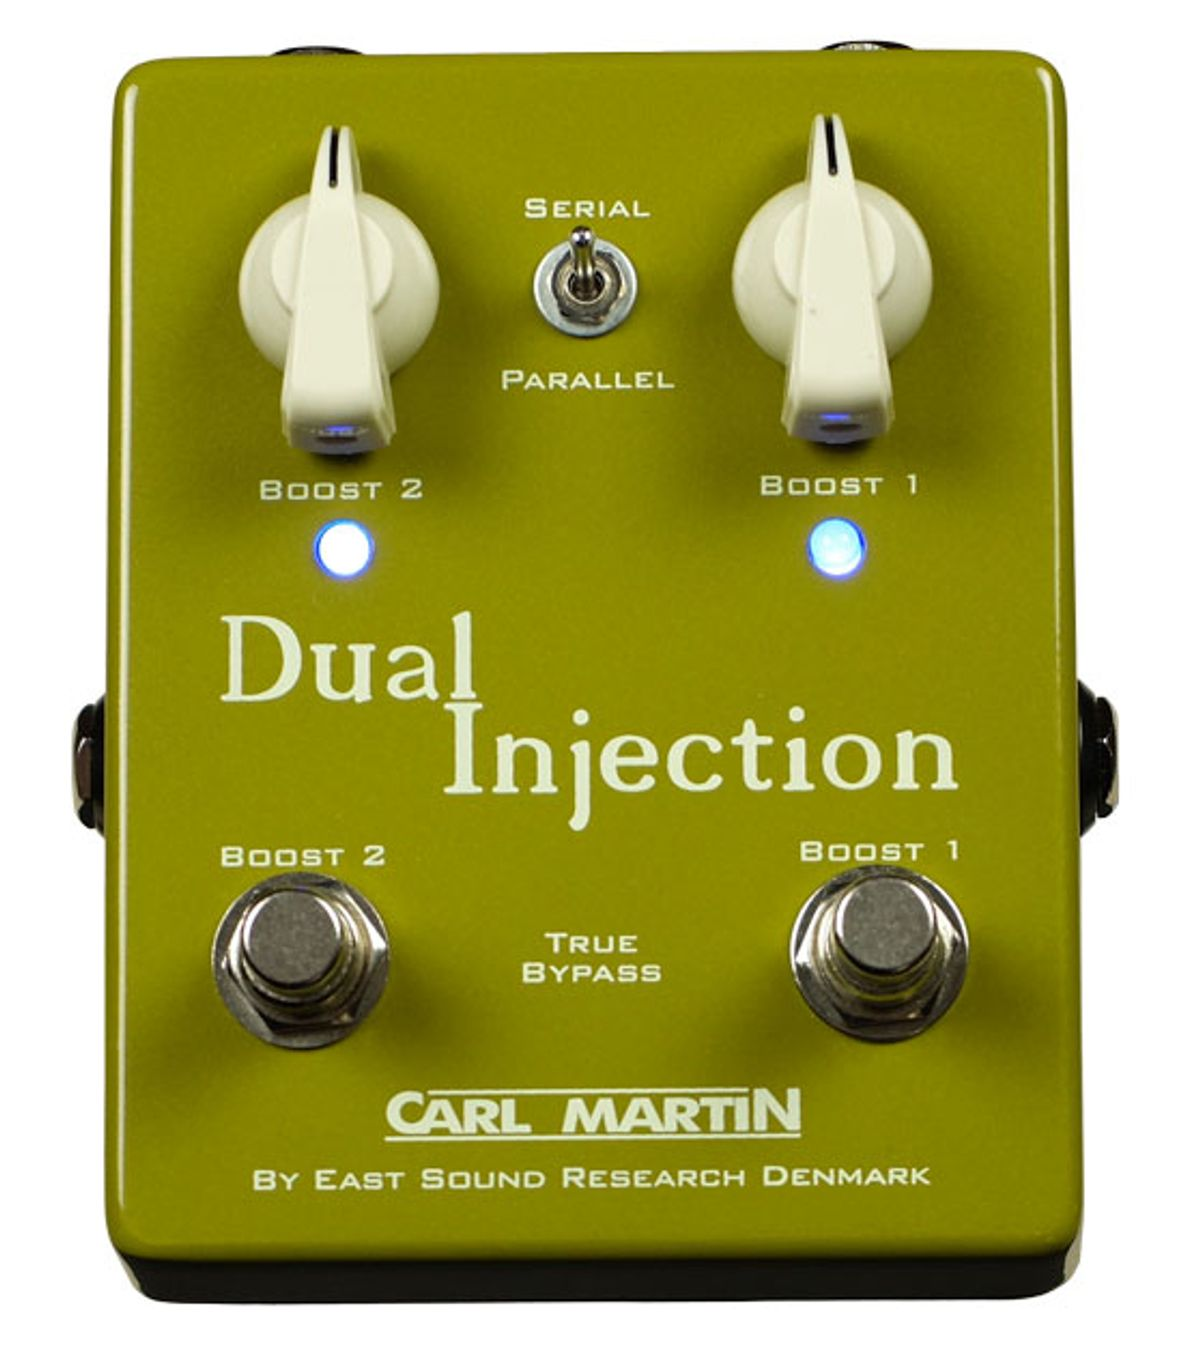 Carl Martin Announces the Dual Injection